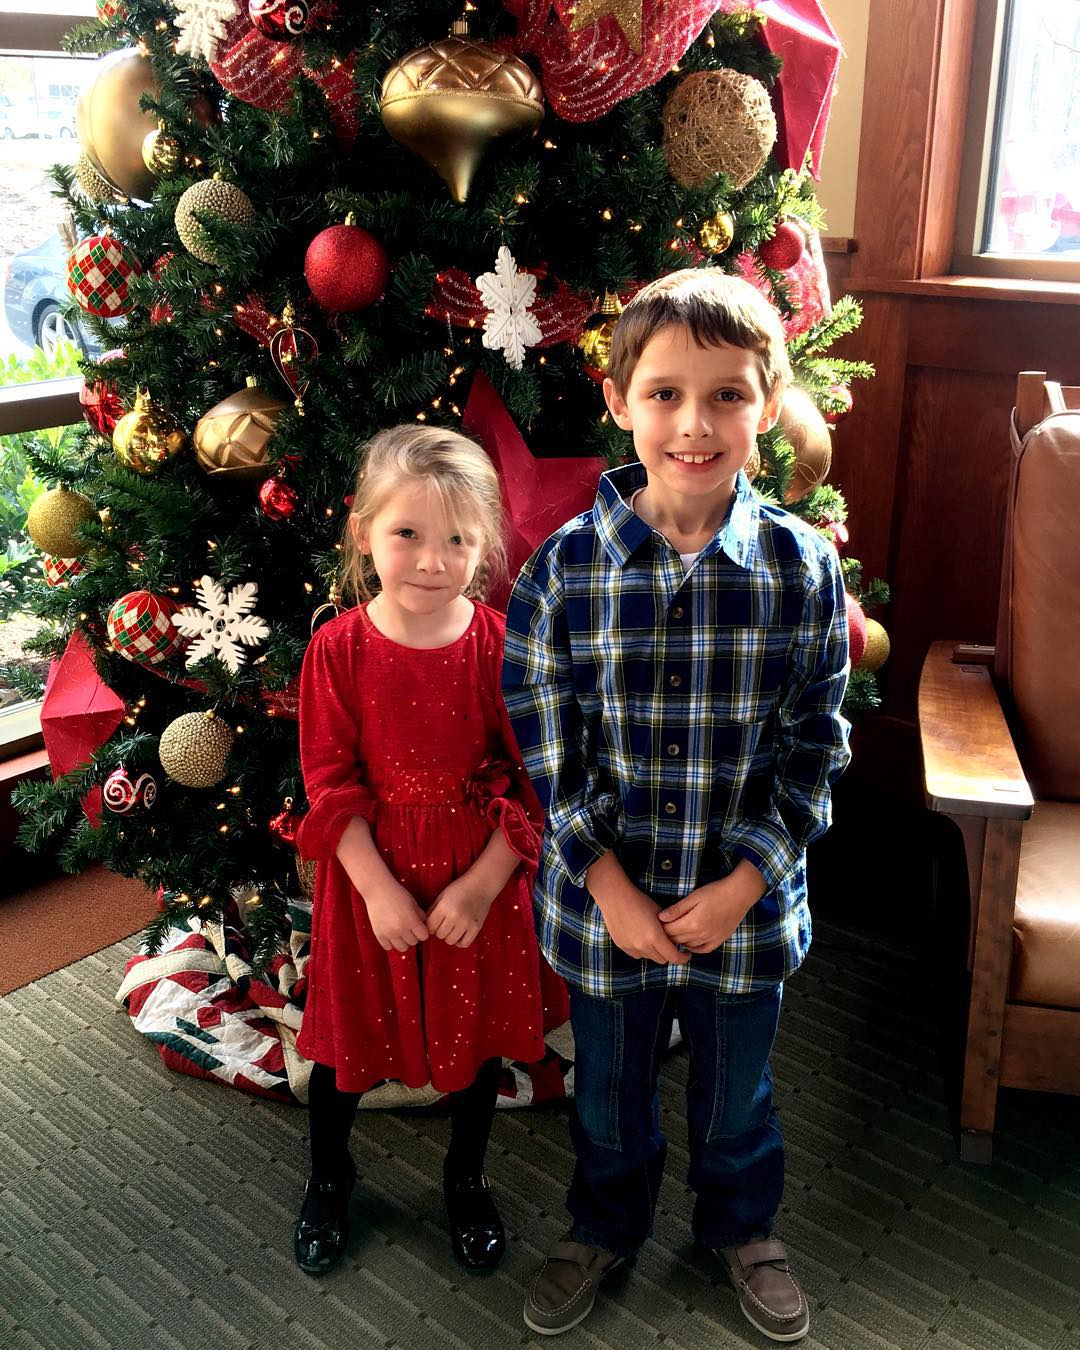 Daniel and Lily Helmick